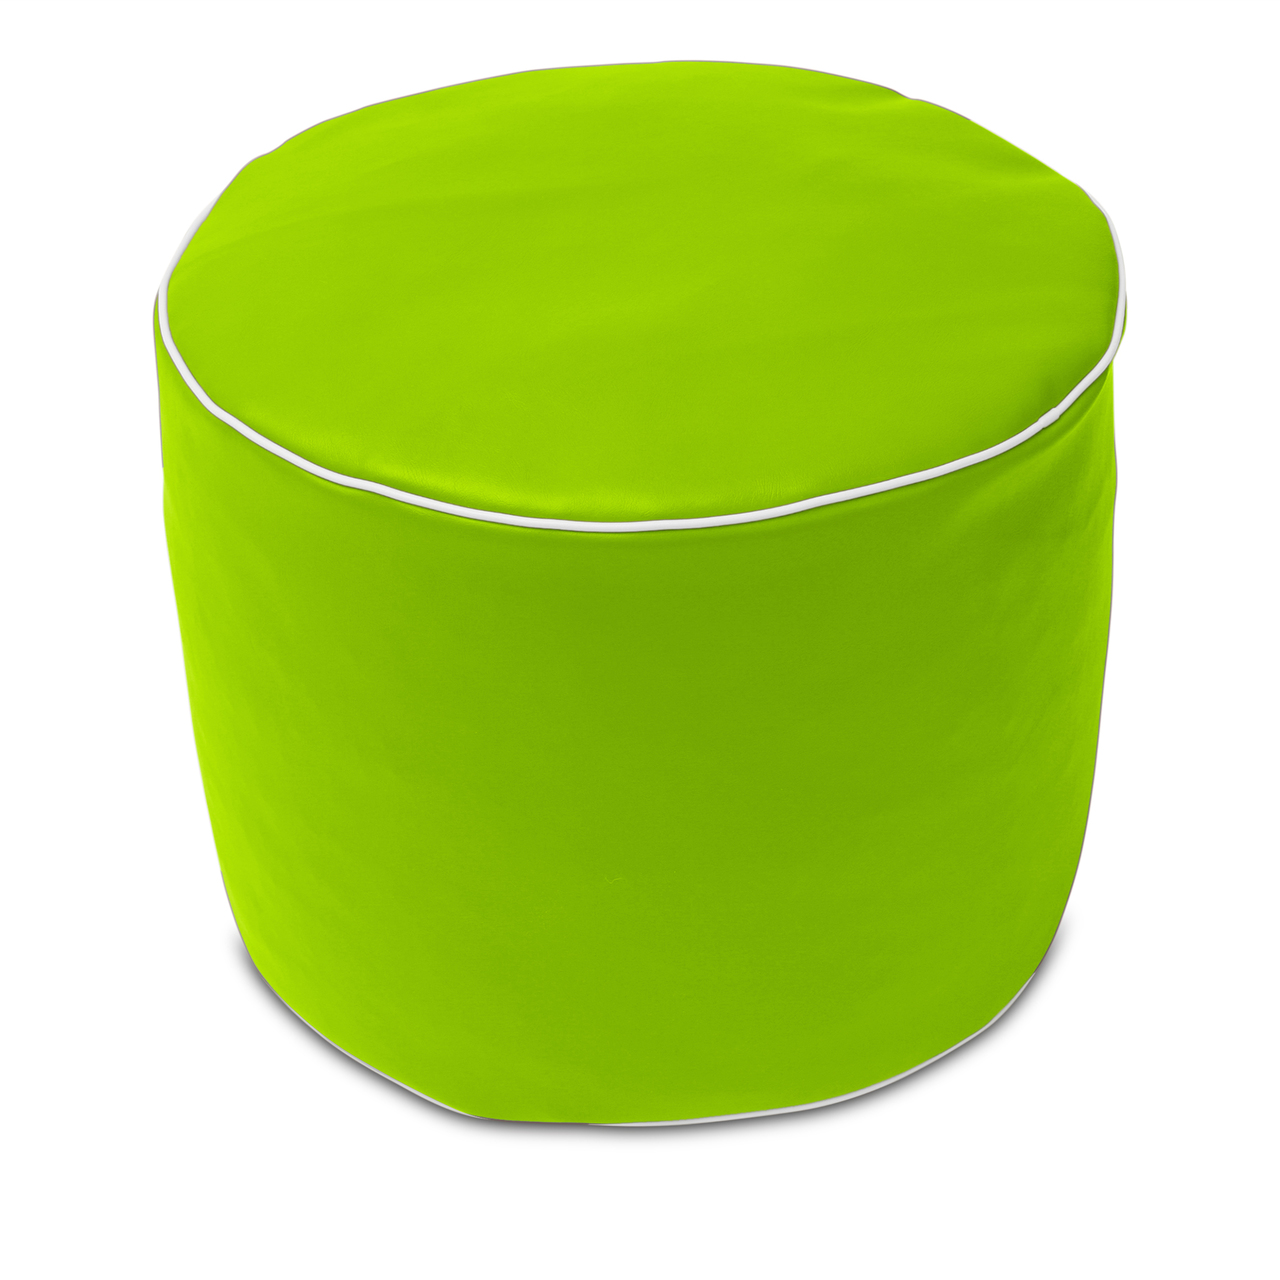 Retro Poof in lime